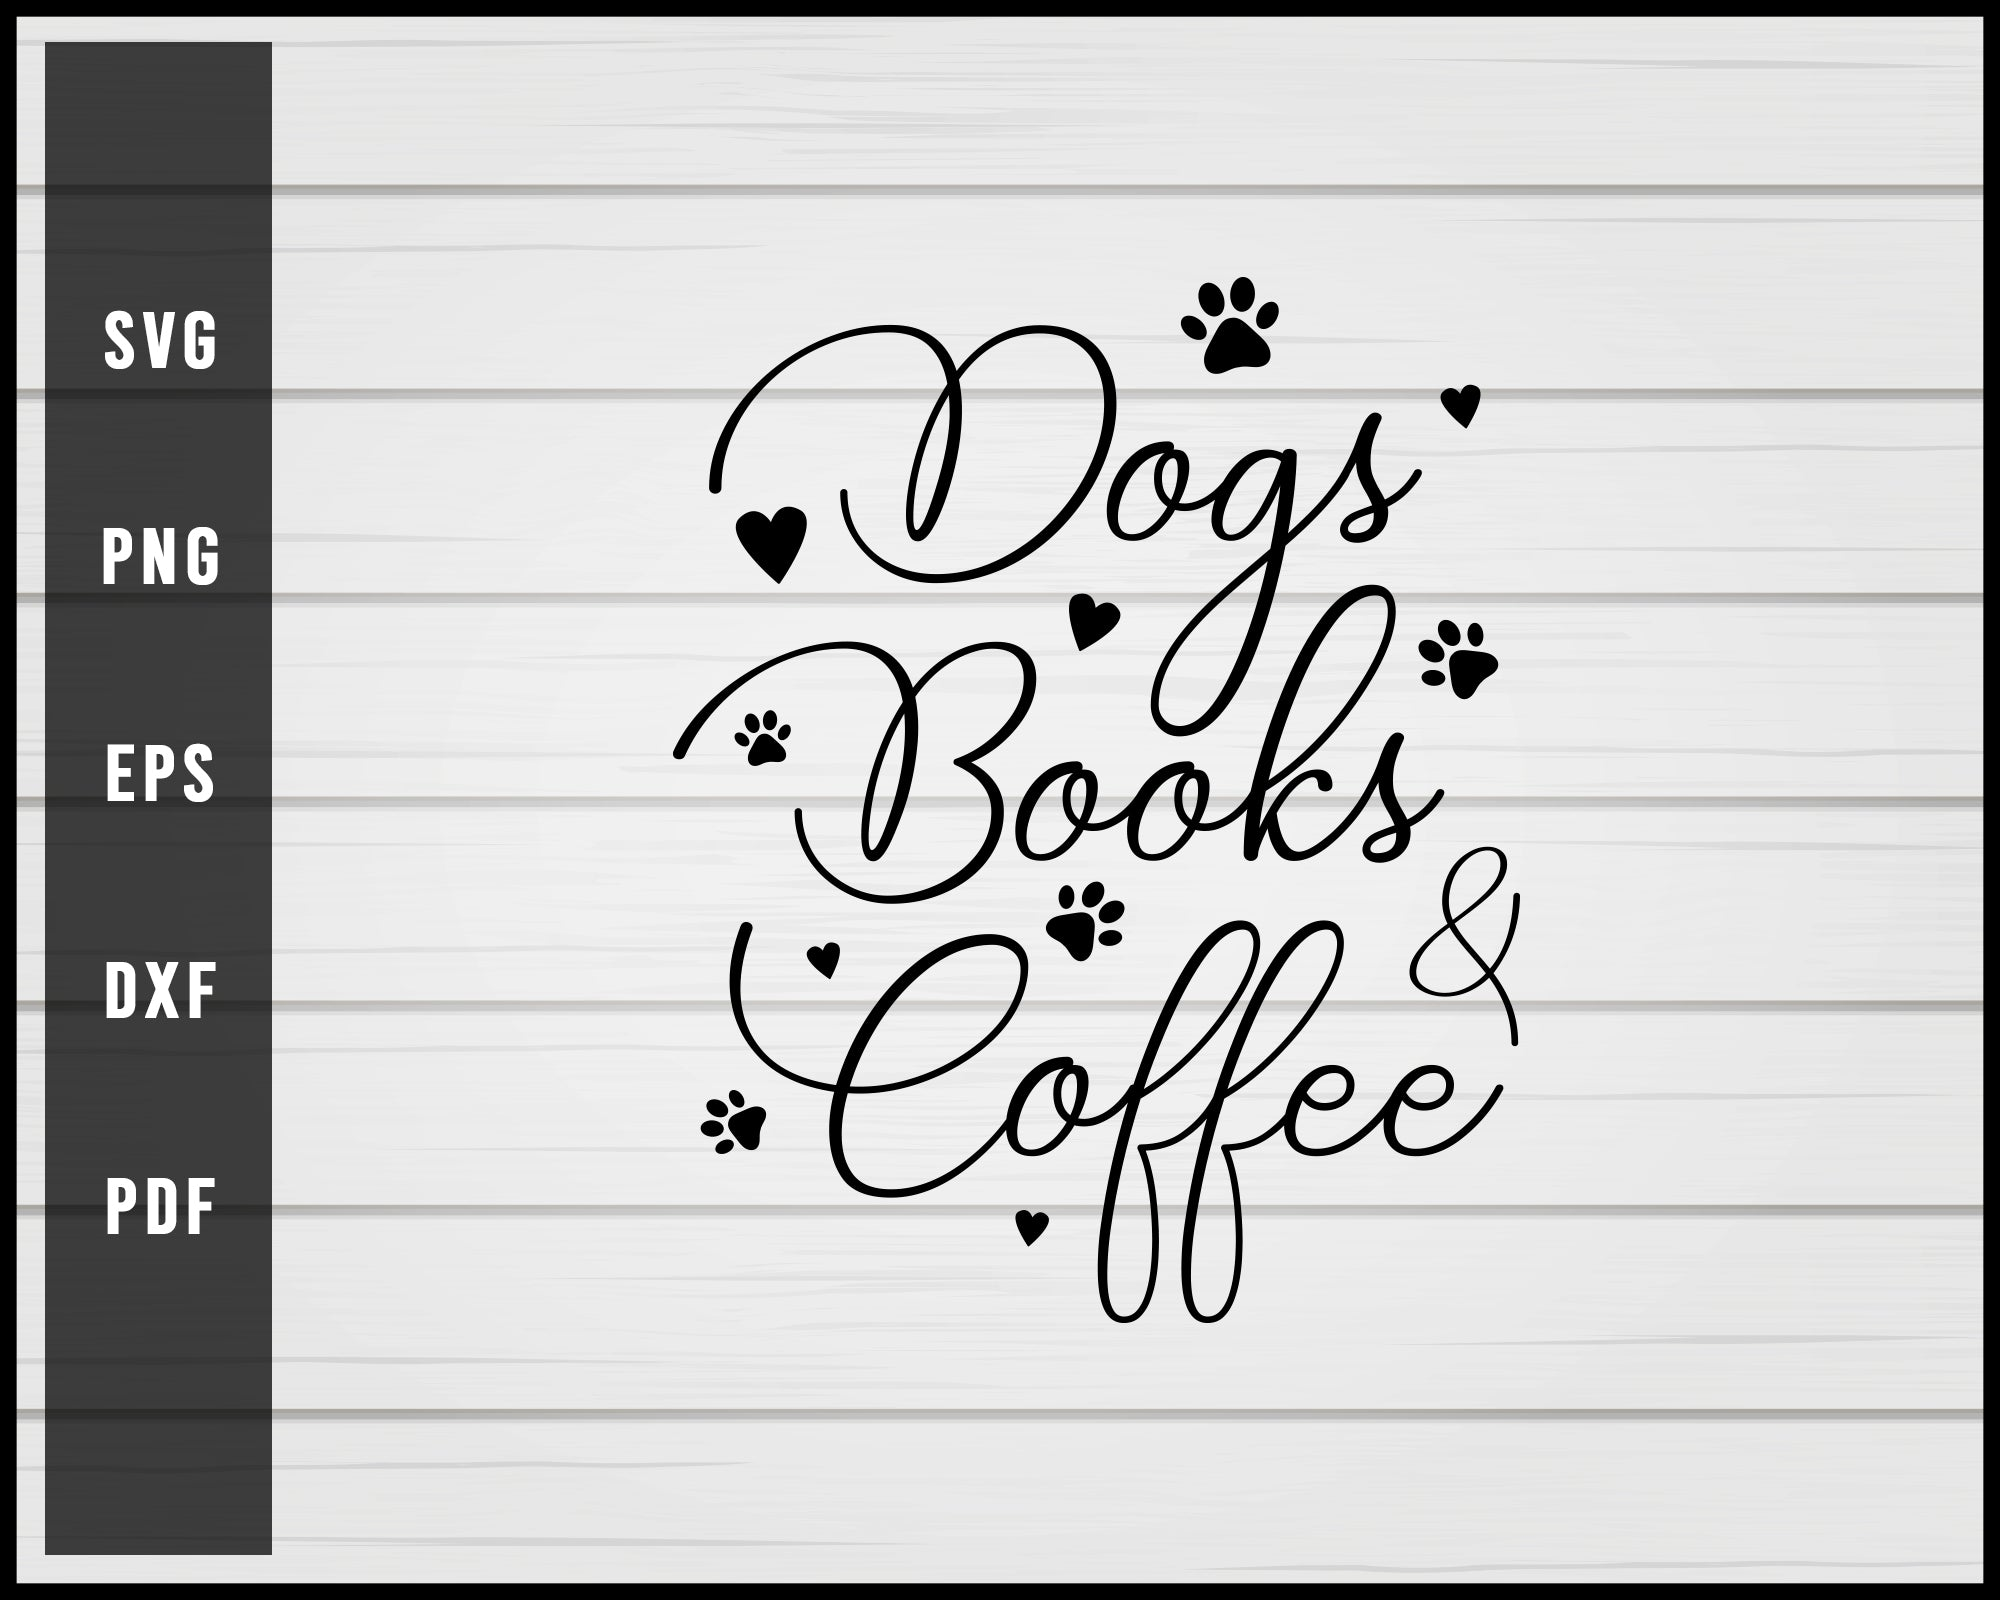 Dogs Books And Coffee svg png Silhouette Designs For Cricut And Printable Files